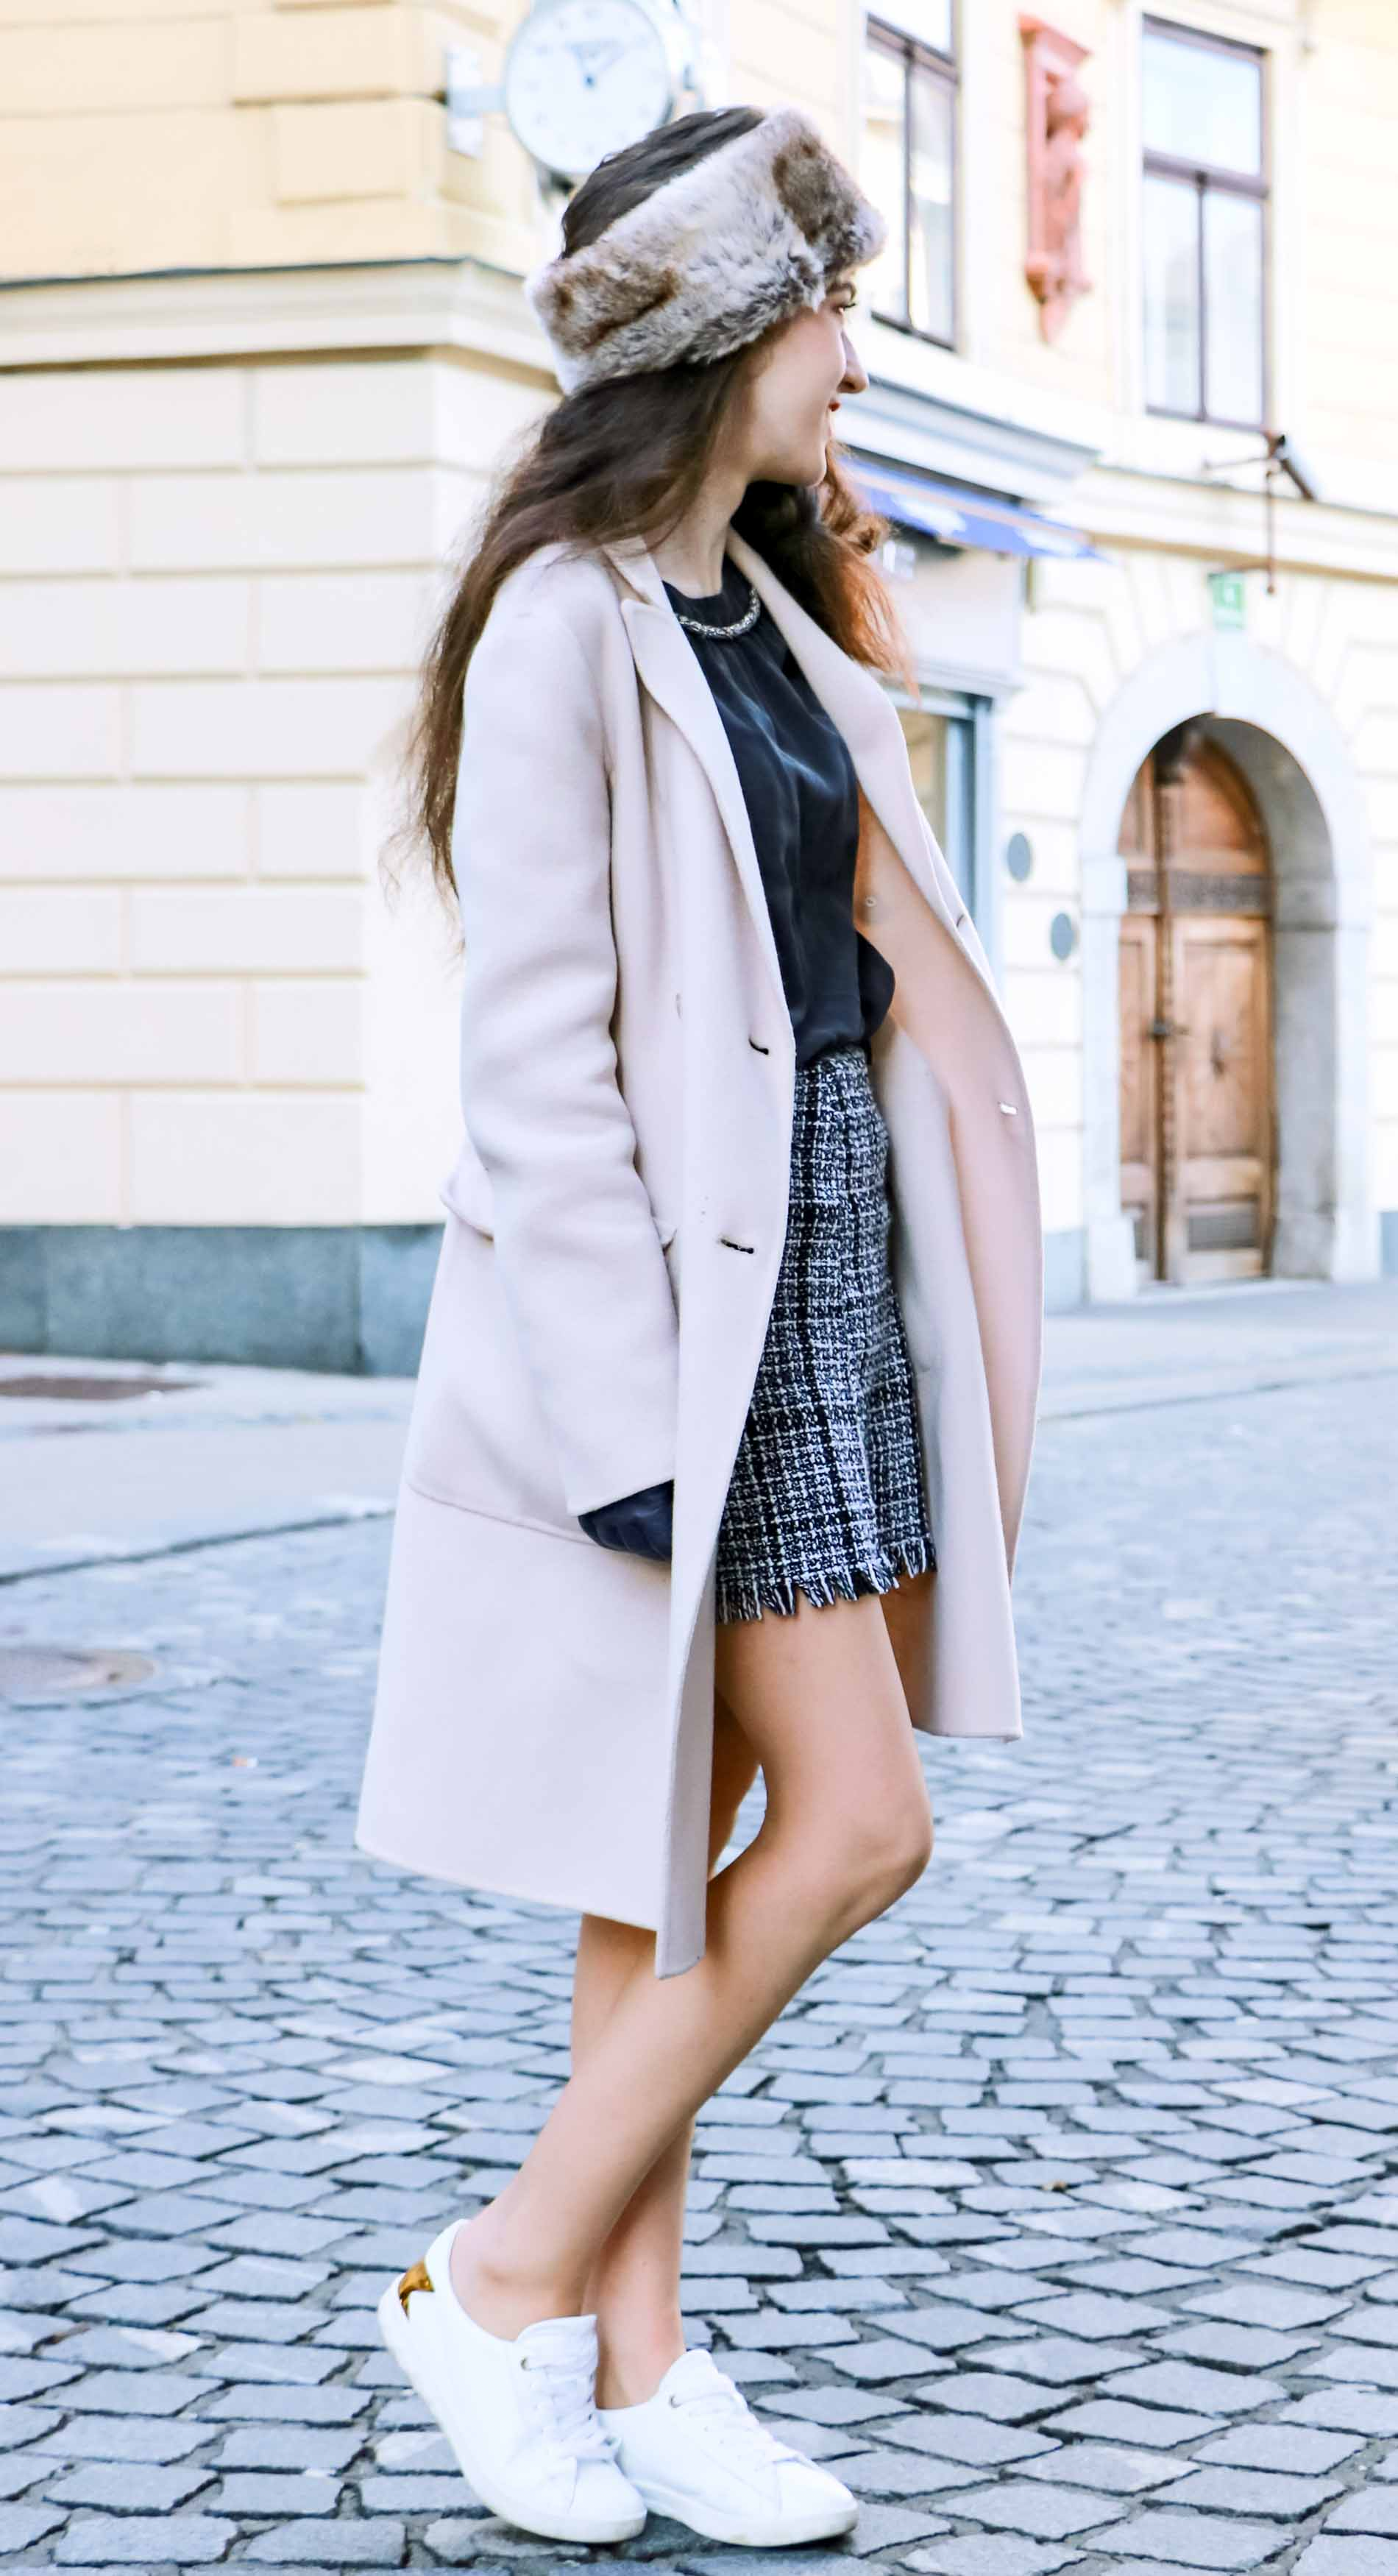 Fashion Blogger Veronika Lipar of Brunette from Wall Street wearing black and white plaid tweed mini skirt from Storets, black silk blouse from Juicy Couture, off-white double breasted wool coat from MaxMara, faux fur headband, chain strap shoulder white bag, blue leather gloves on the street in Ljubljana